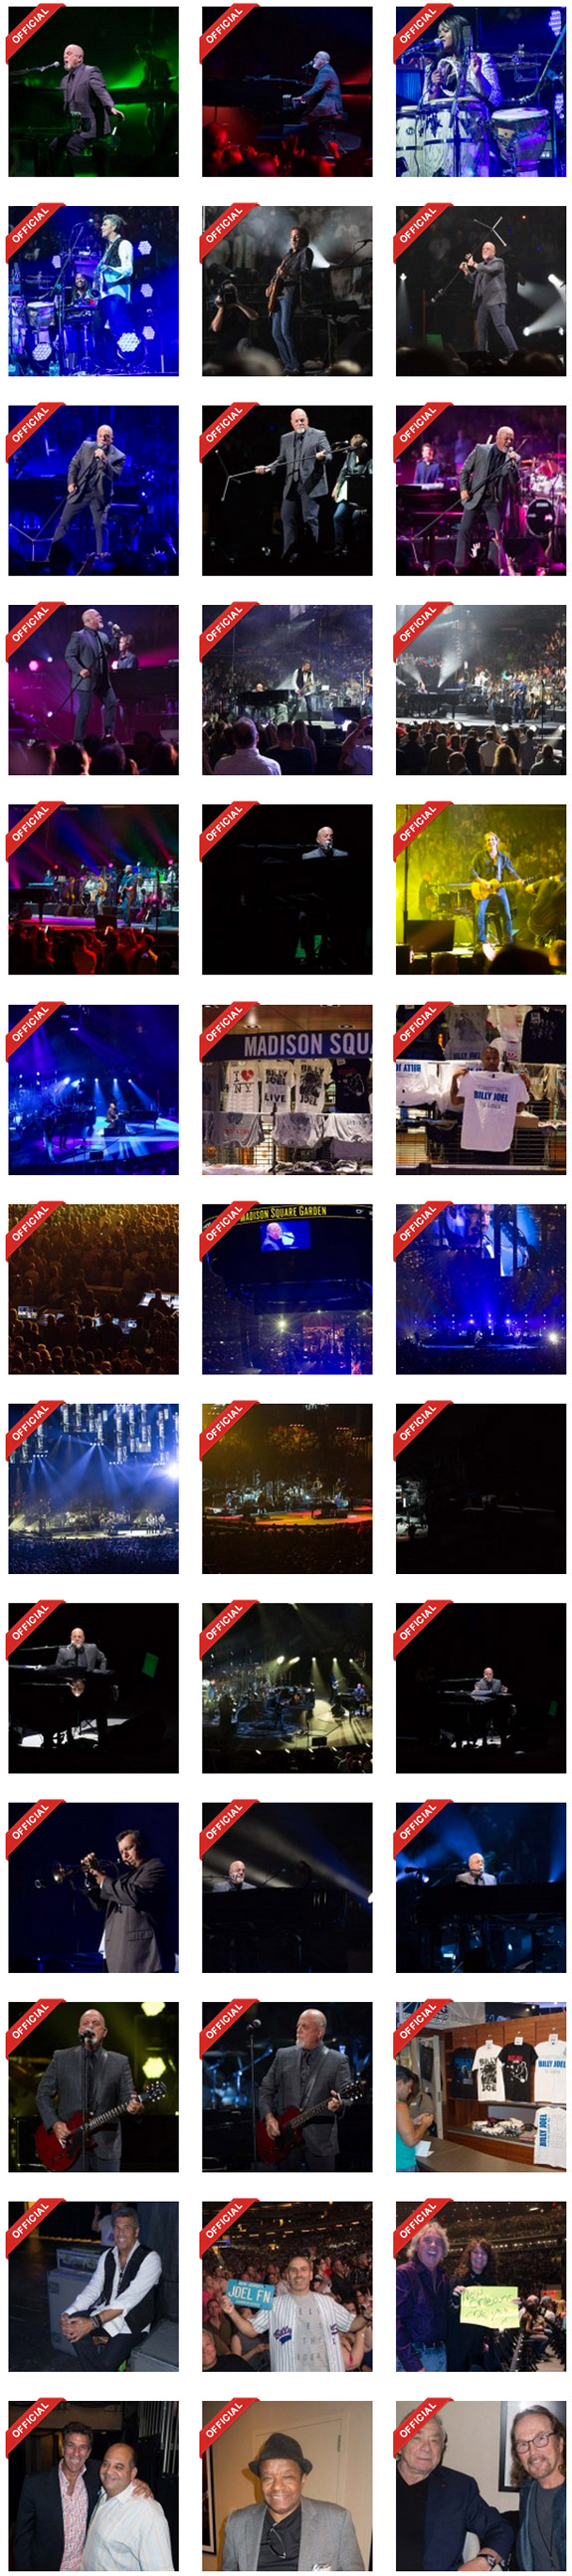 Billy Joel at Madison Square Garden June 21, 2014 photo thumbnails